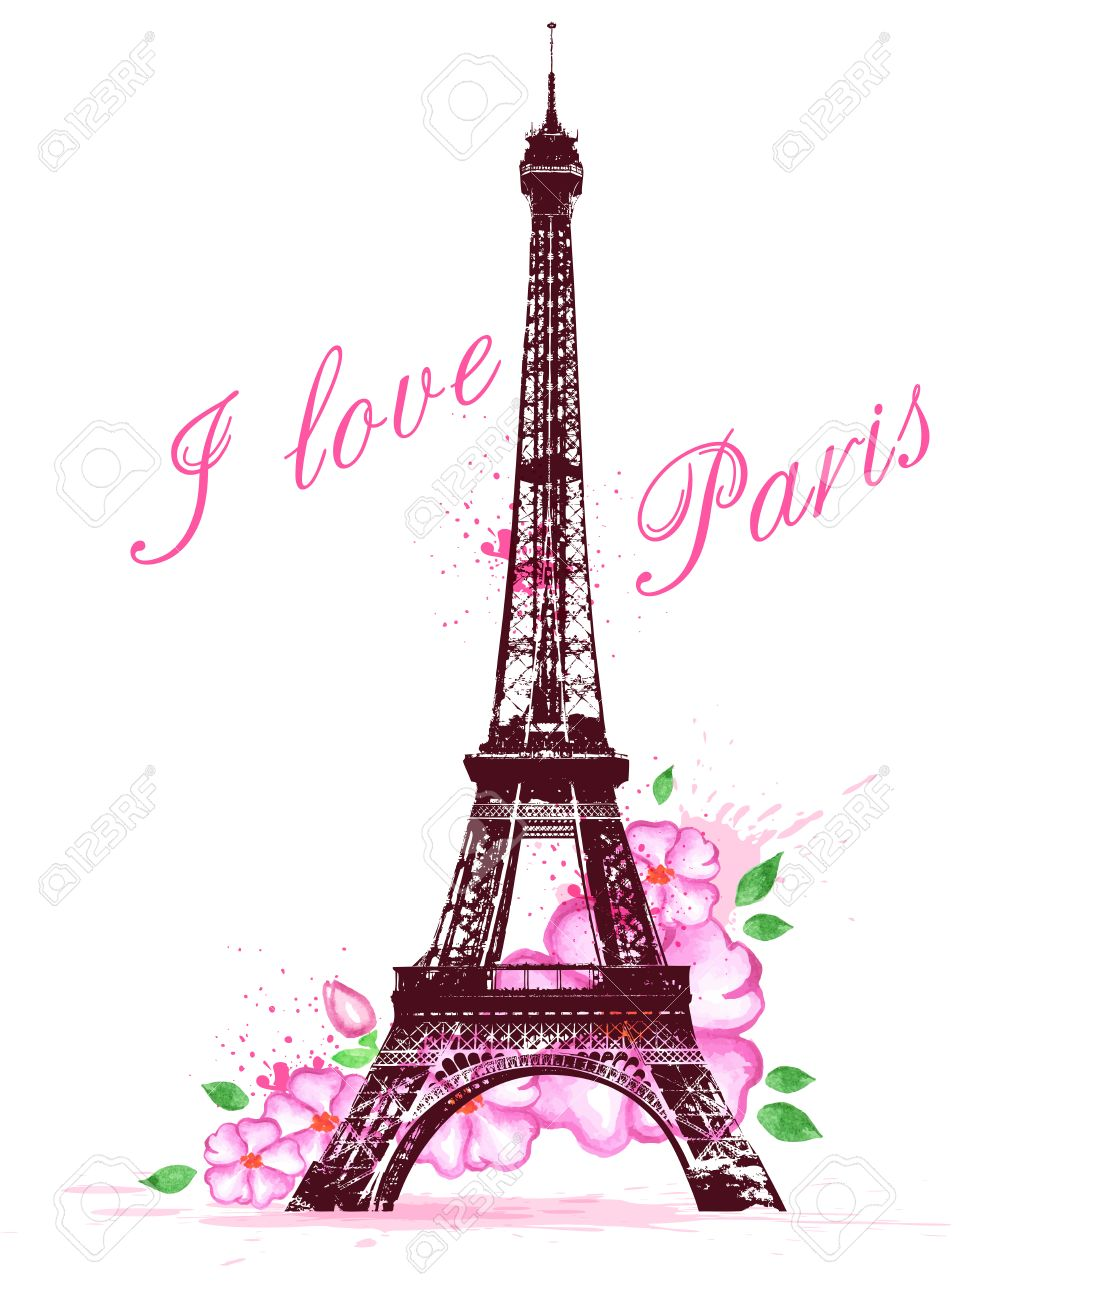 Romantic Background With Pink Watercolor Flowers And Eiffel Tower Stock Vector